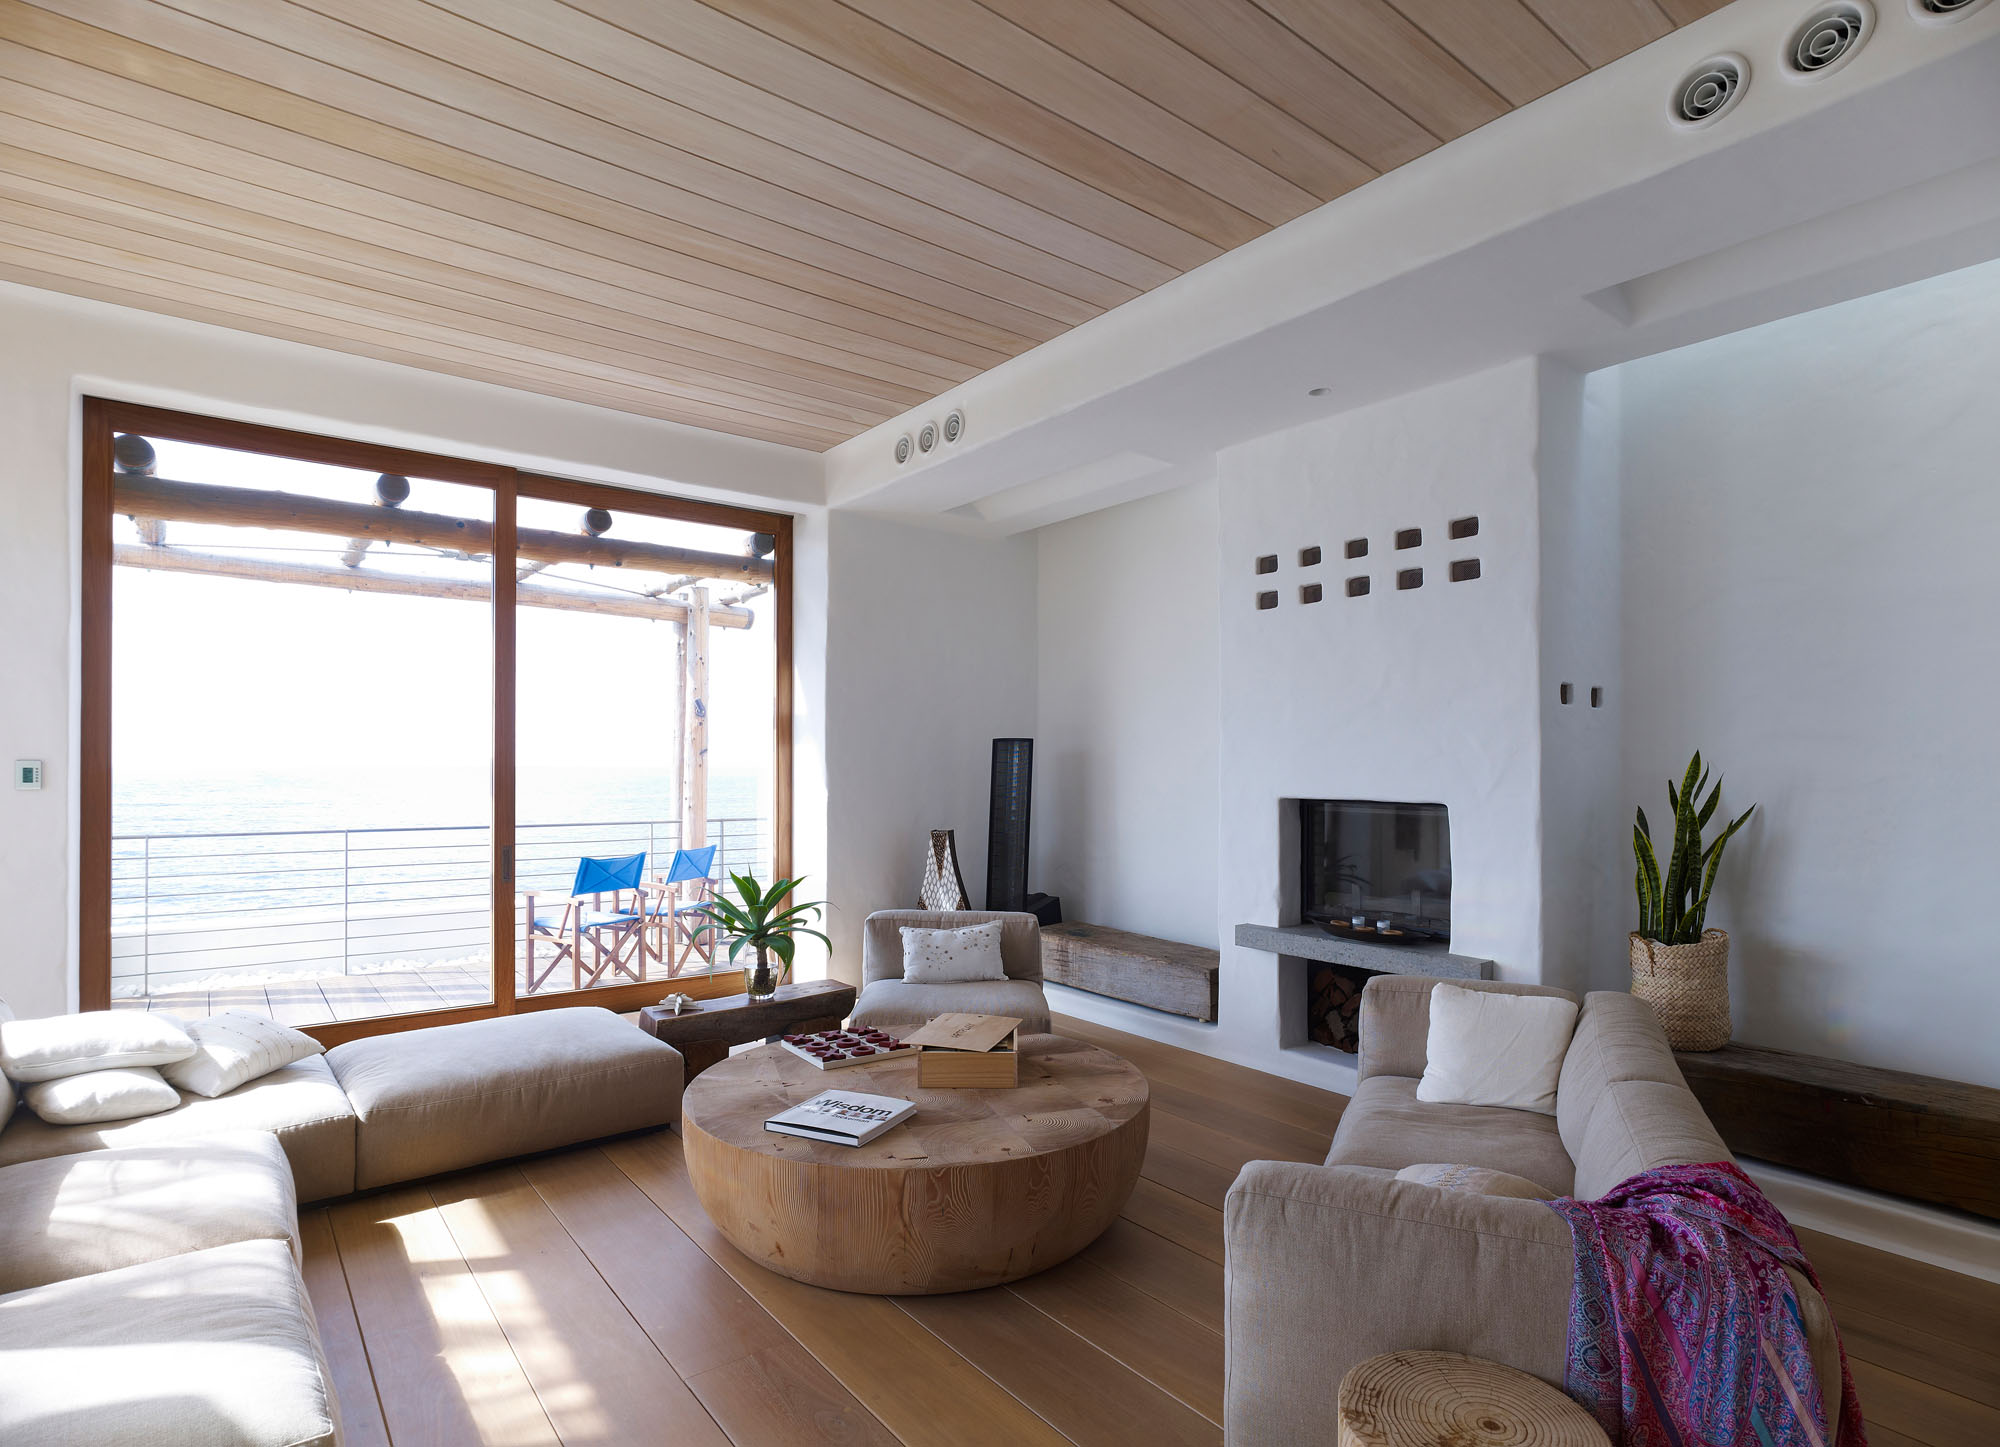 Living Space, Sofas, Beautiful Waterfront Home in Coogee, Australia